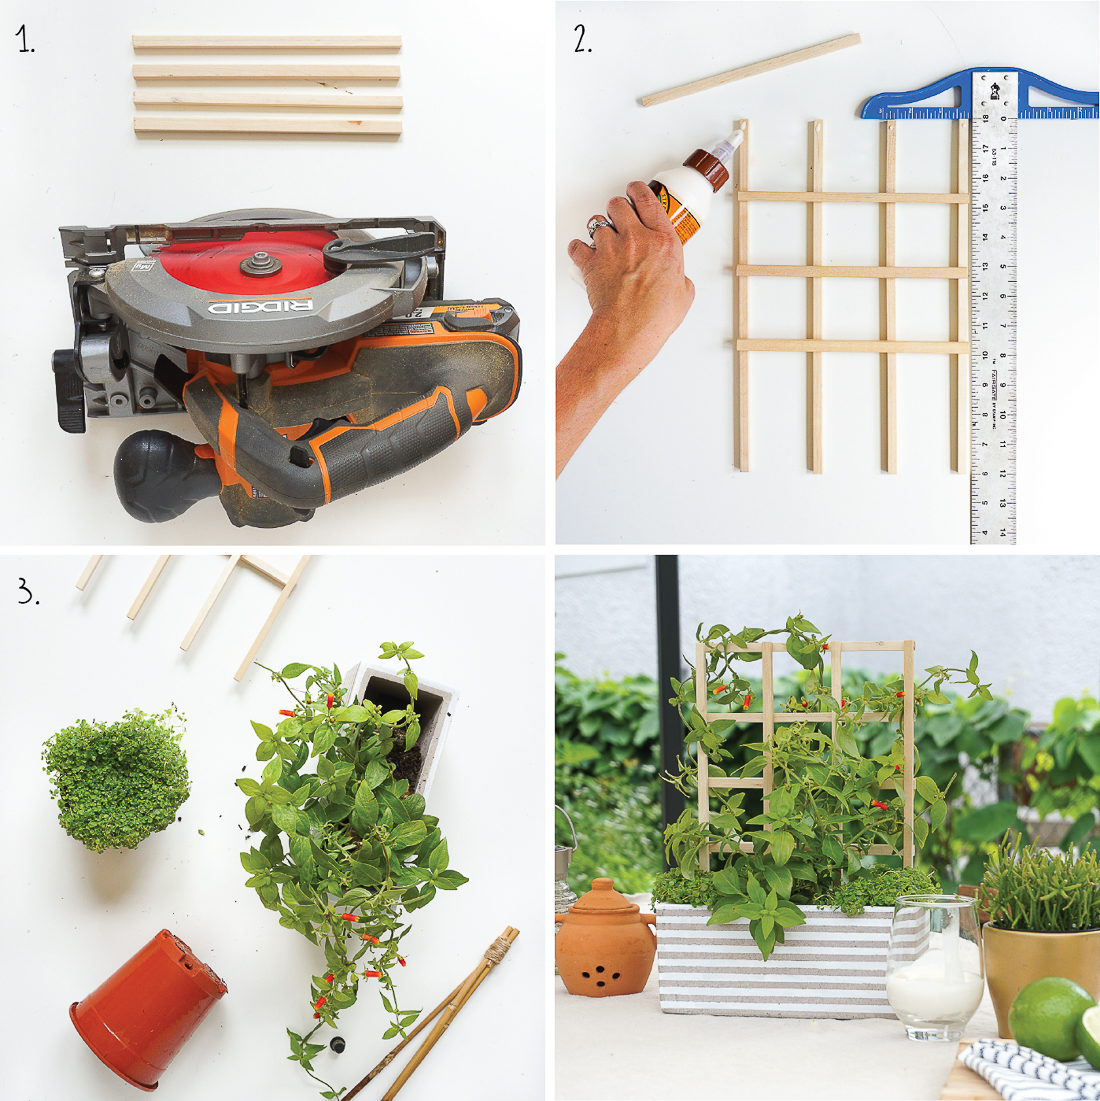 Want to create an al fresco retreat in your backyard? Check out 3 easy ways to add style with simple craft store supplies.